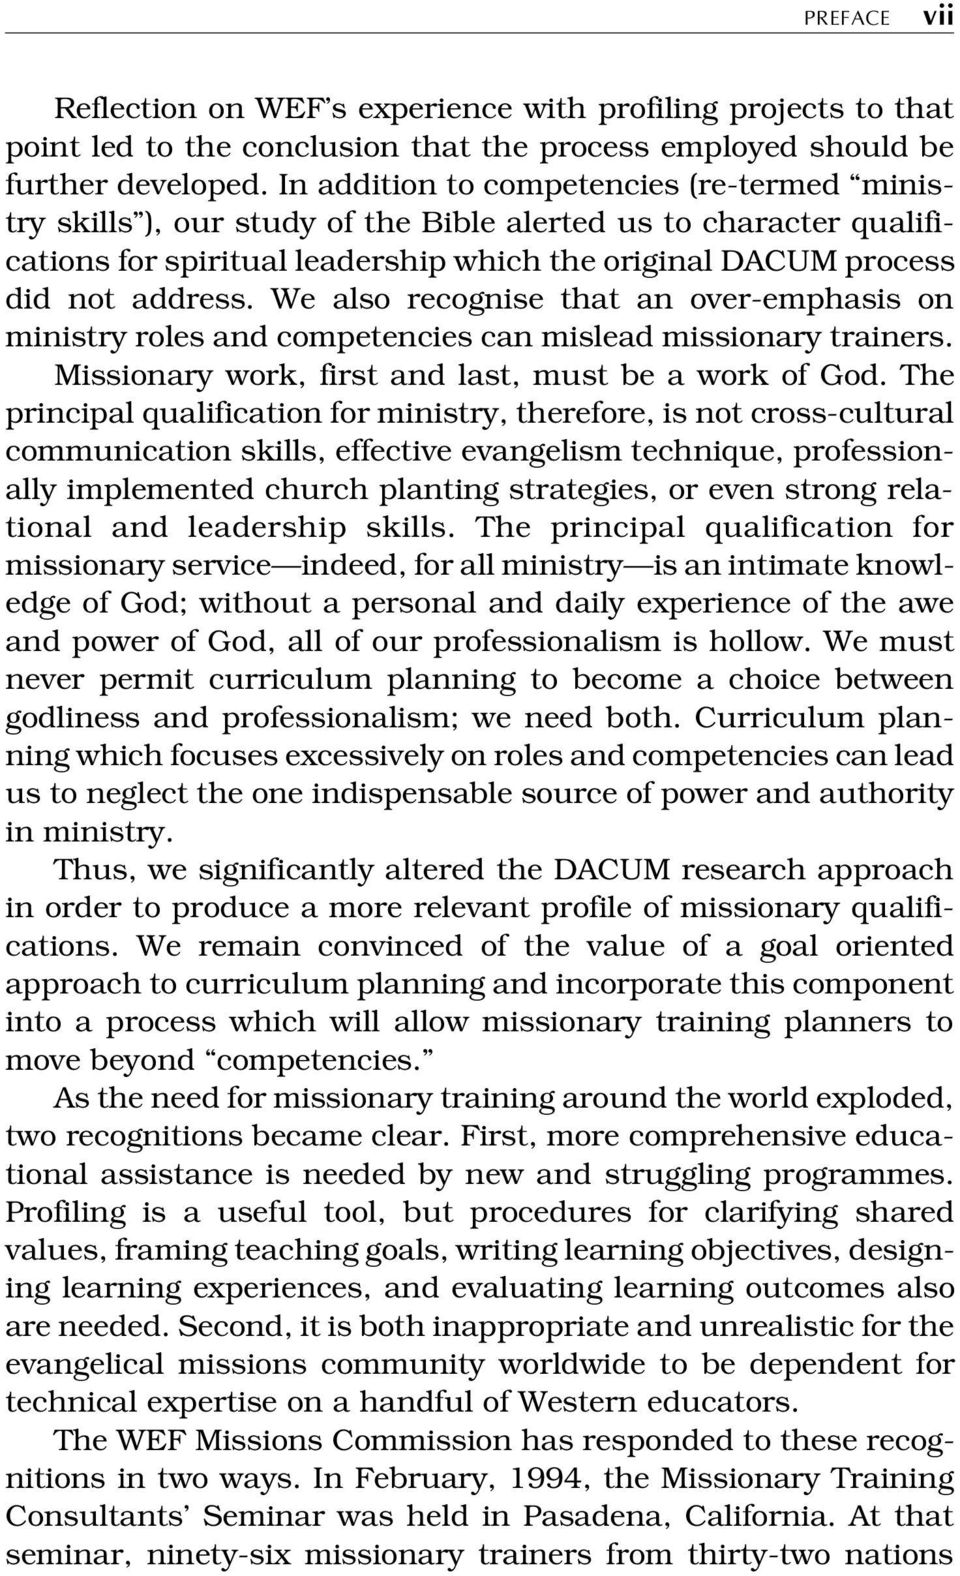 We also recognise that an over-emphasis on ministry roles and competencies can mislead missionary trainers. Missionary work, first and last, must be a work of God.